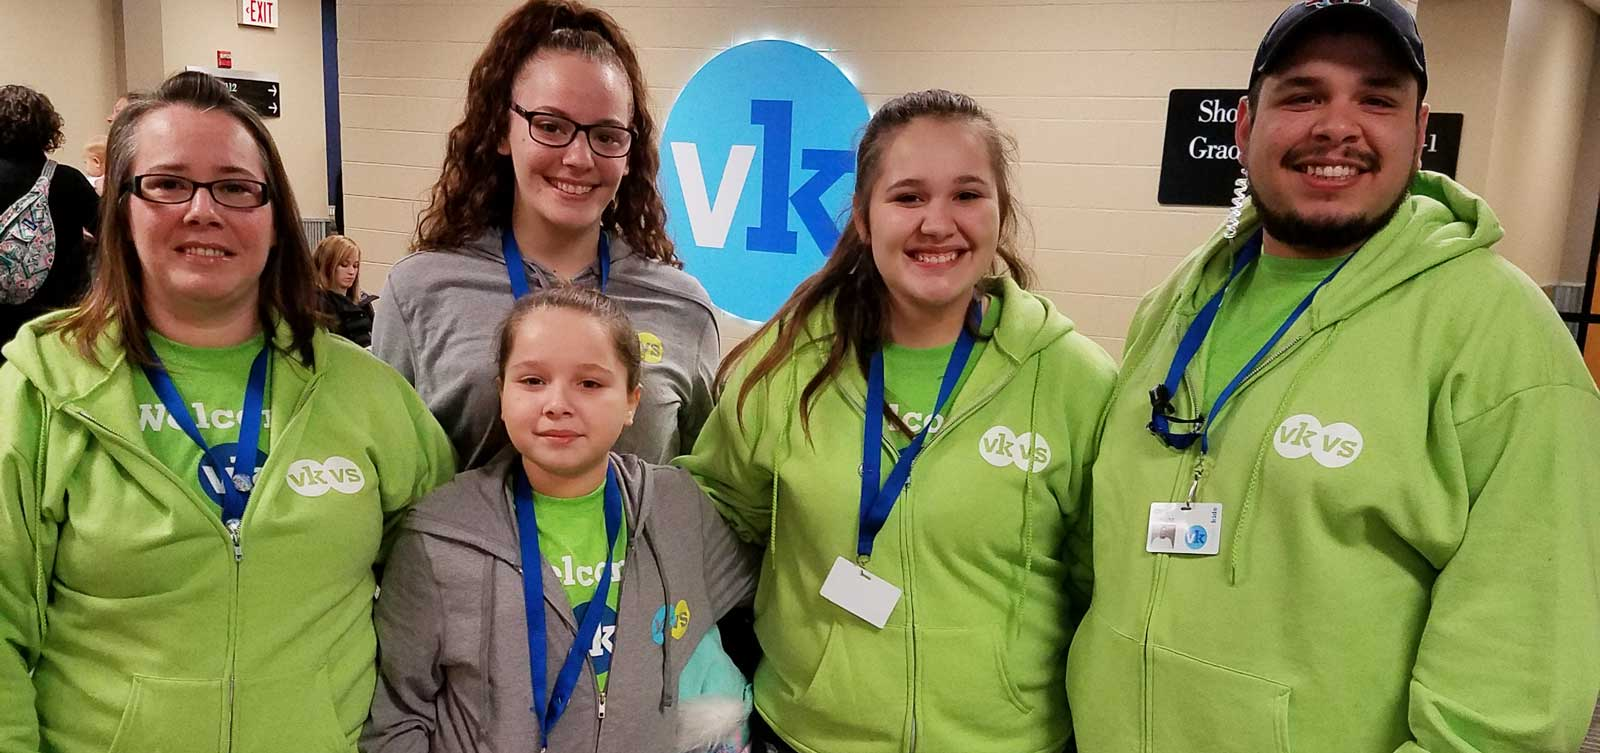 NEXT GEN:  Vineyard Kids & Students Volunteer Orientation